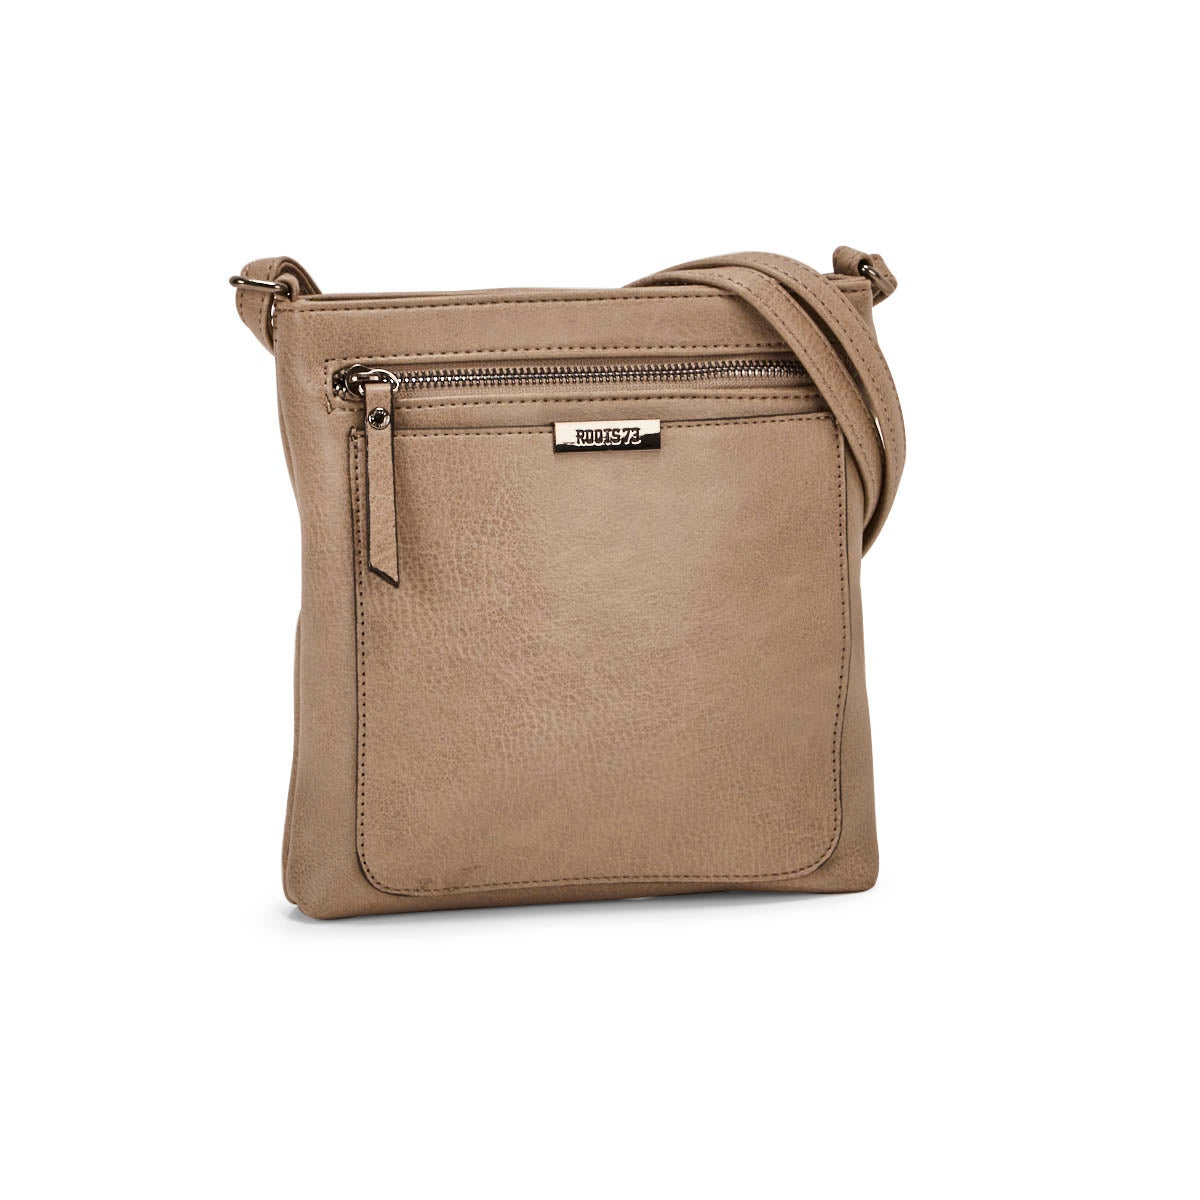 Lds Roots73 taupe top zip crossbody bag